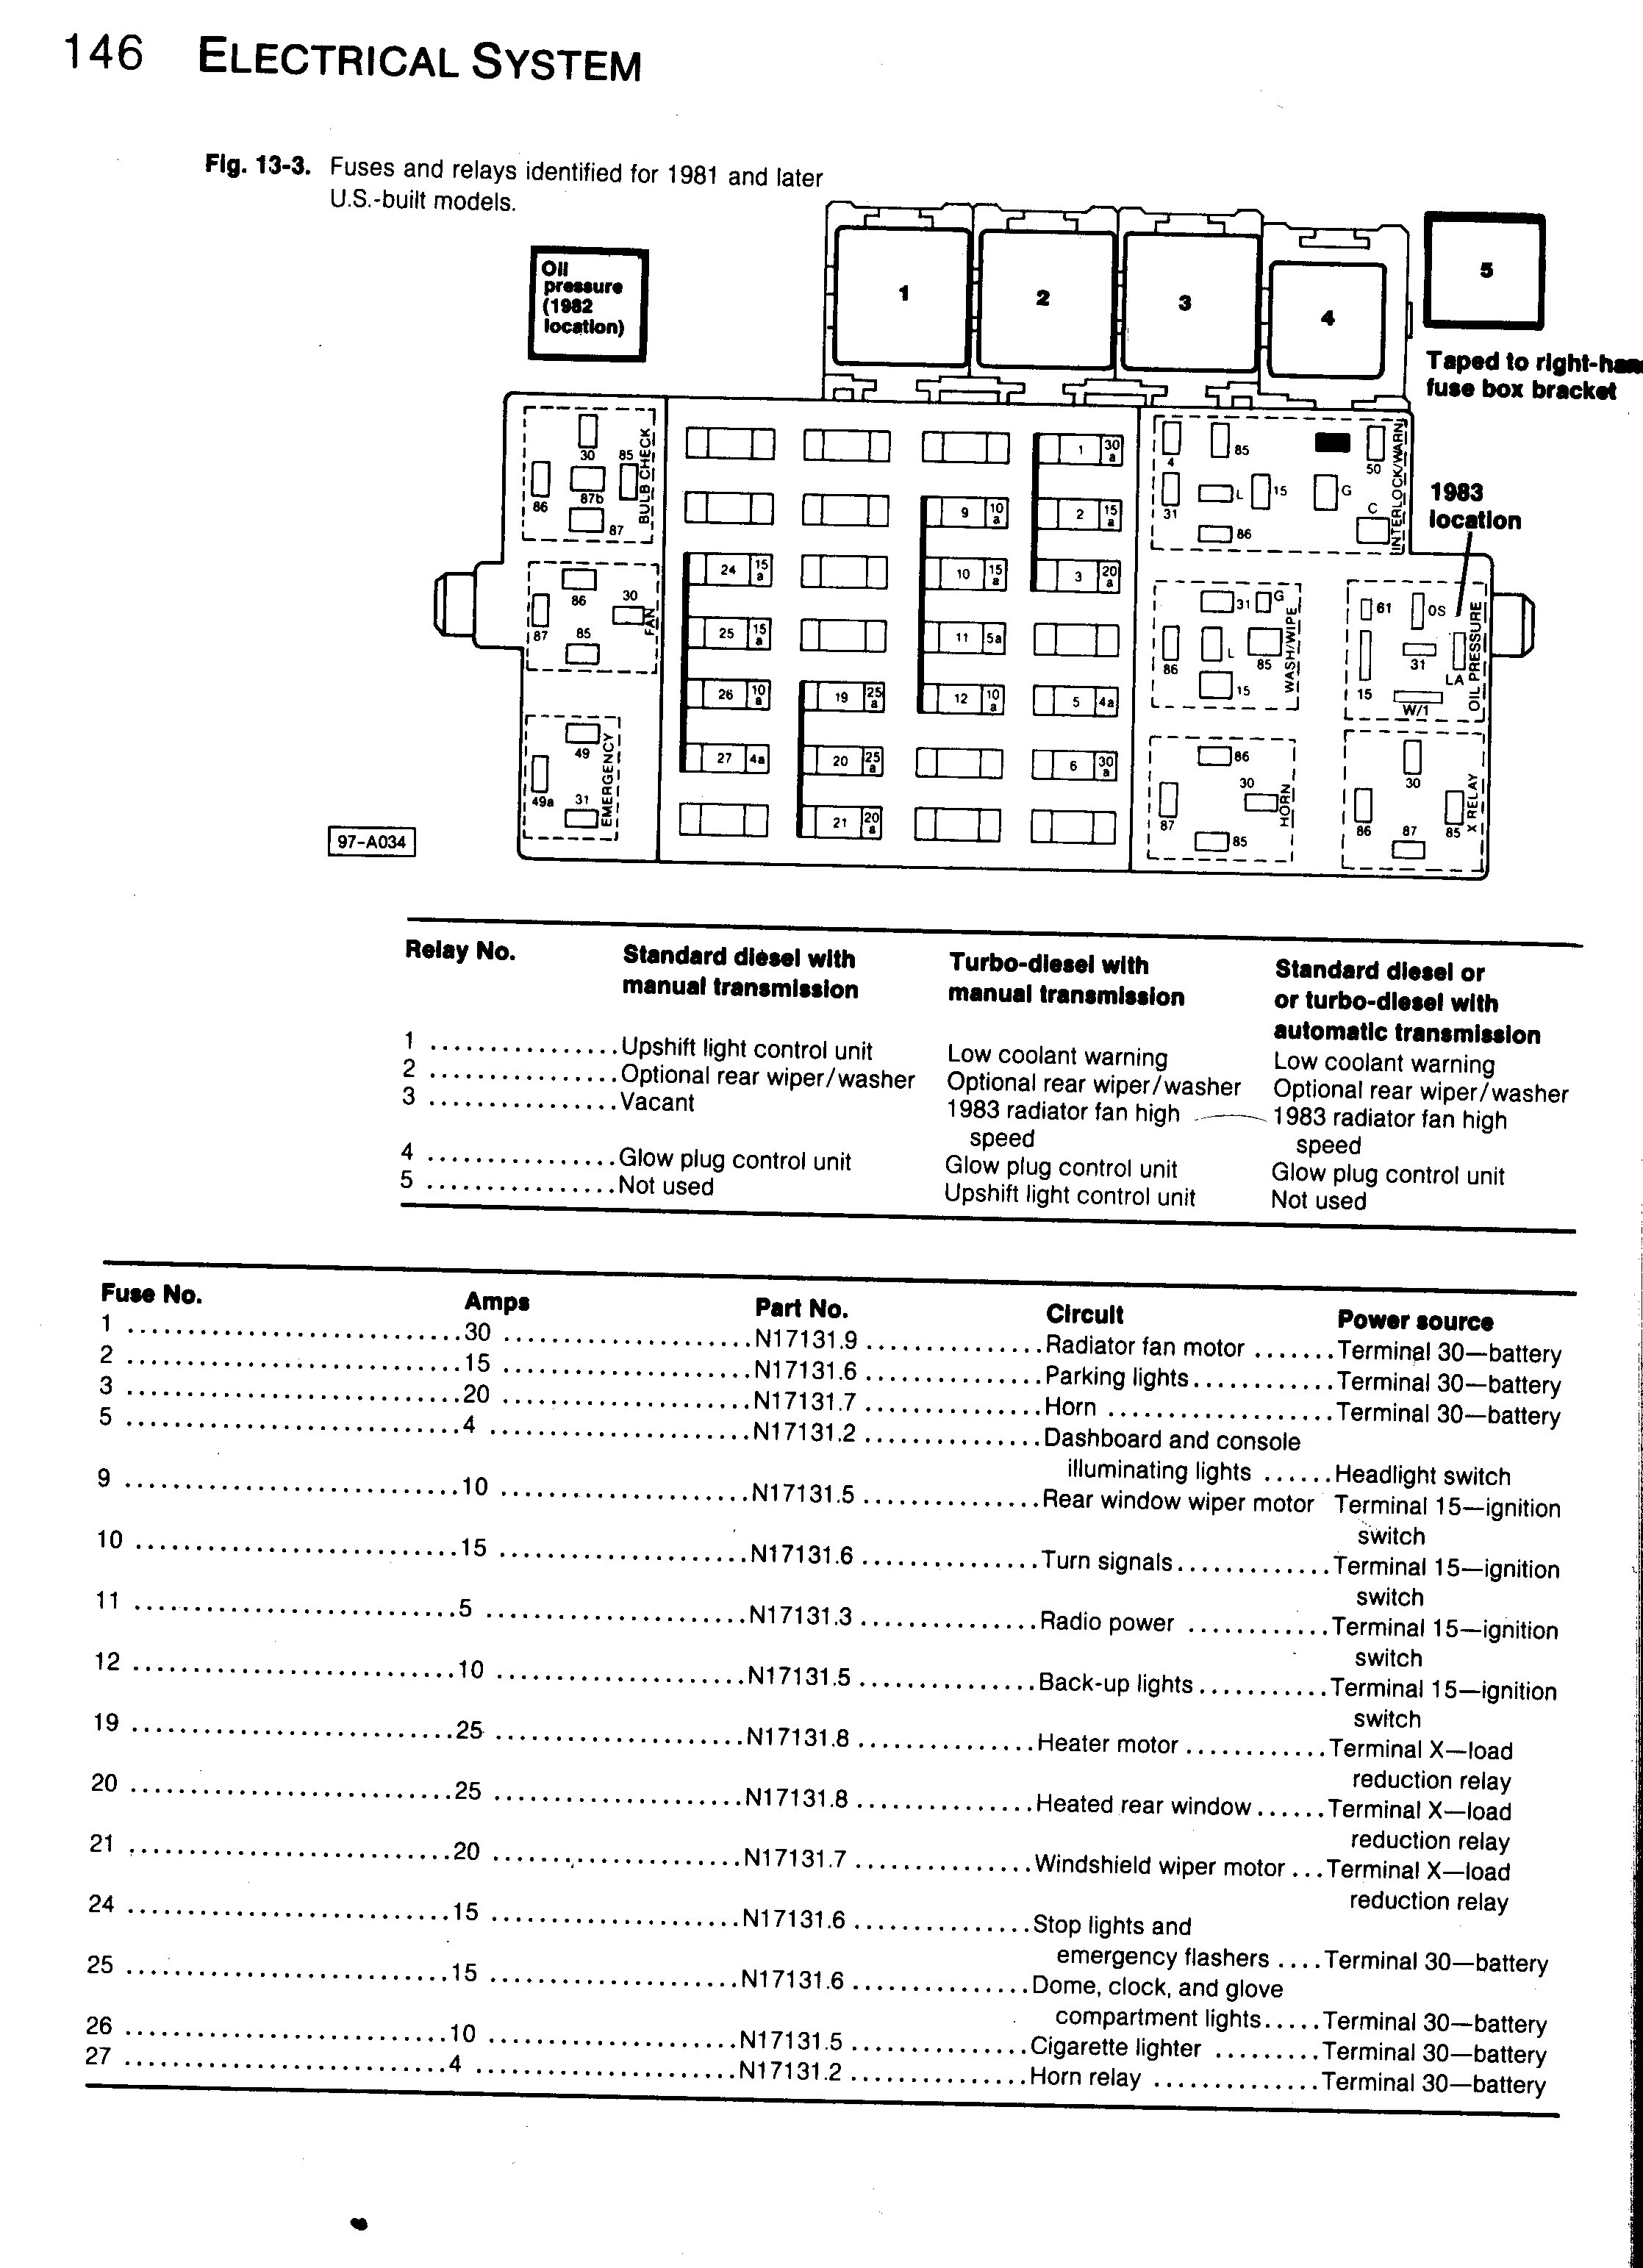 1984 Vanagon Fuse Relay Panel Schematic Wiring Diagrams 12 Volt Furthermore Diagram Moreover Vw Van Box Schematics U2022 Rh Seniorlivinguniversity Co